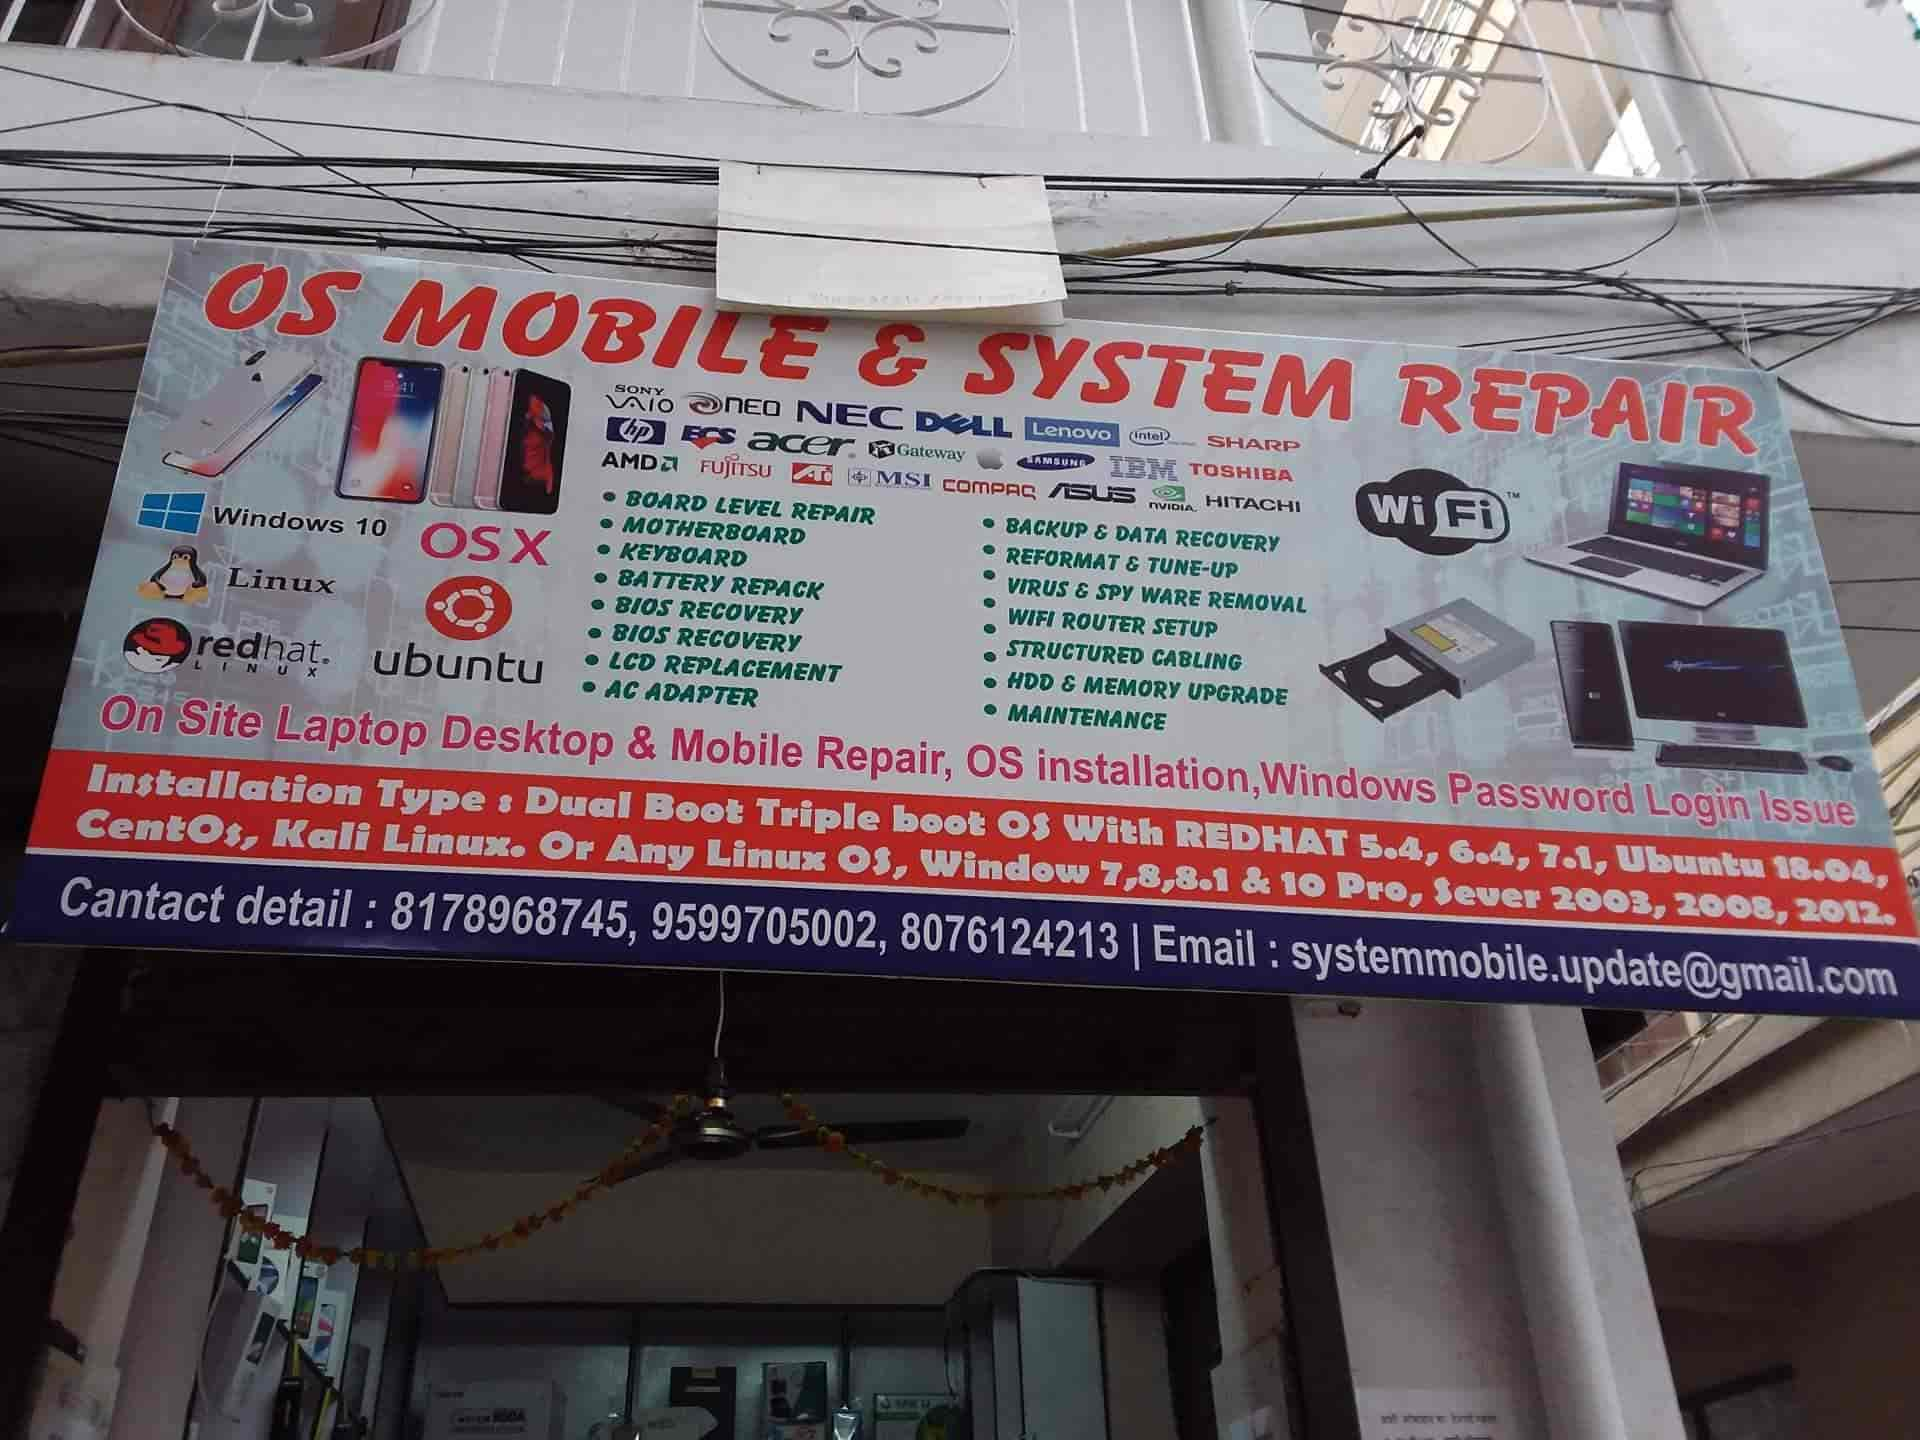 OS Mobile & System Repair, Uttam Nagar - Mobile Phone Repair